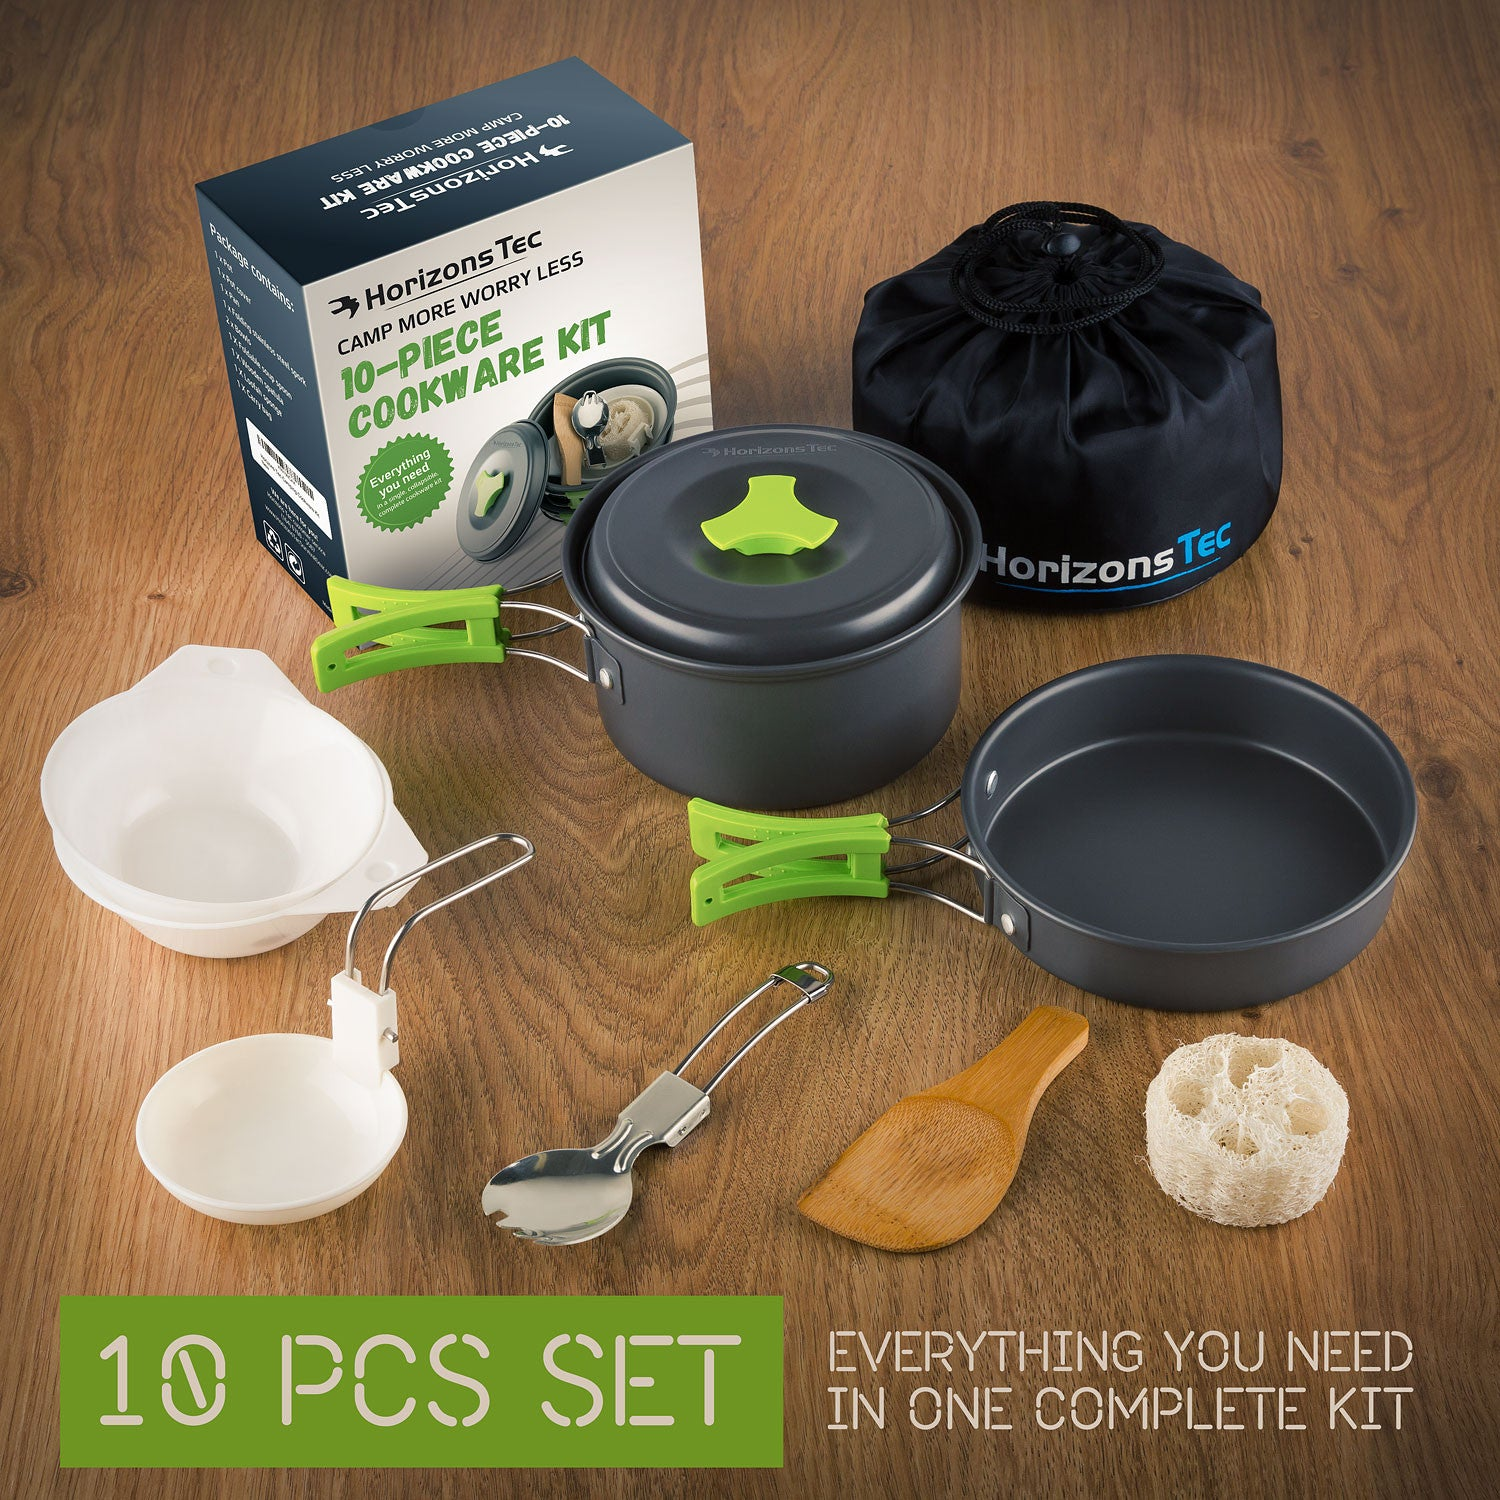 https://horizonstecsurvivalgear.com/collections/camp-cookware-stoves/products/horizons-tec-camping-cookware-equipment